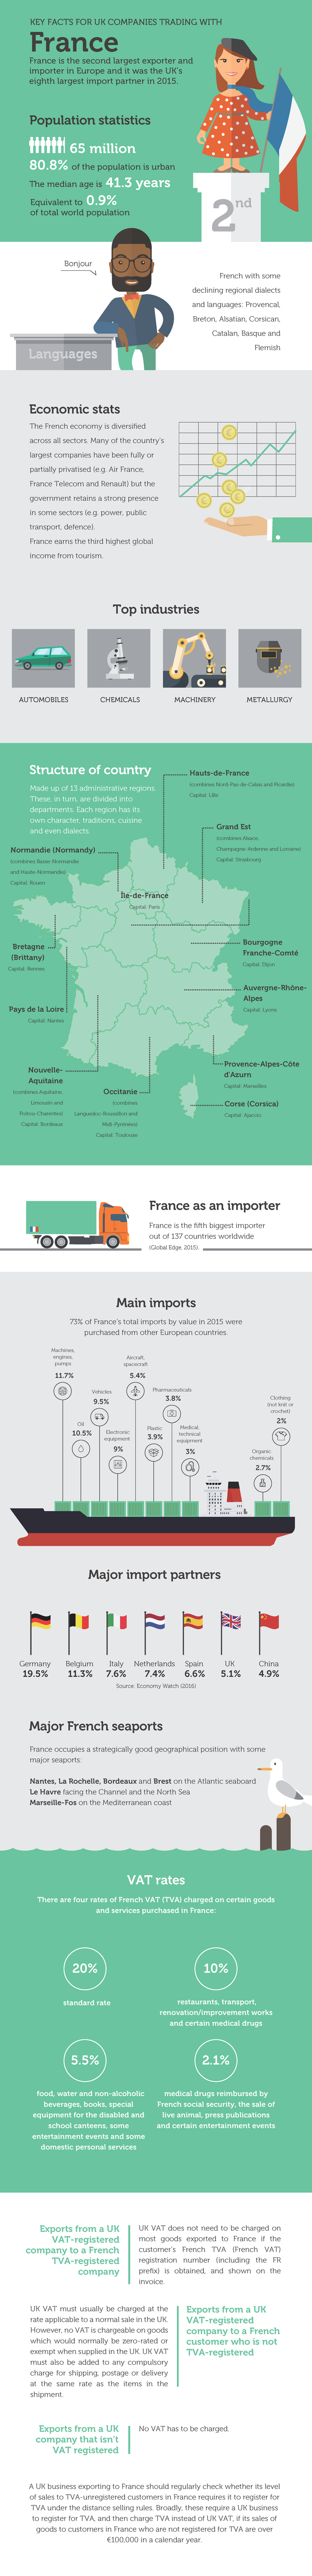 Key facts for UK businesses trading with France Infographic